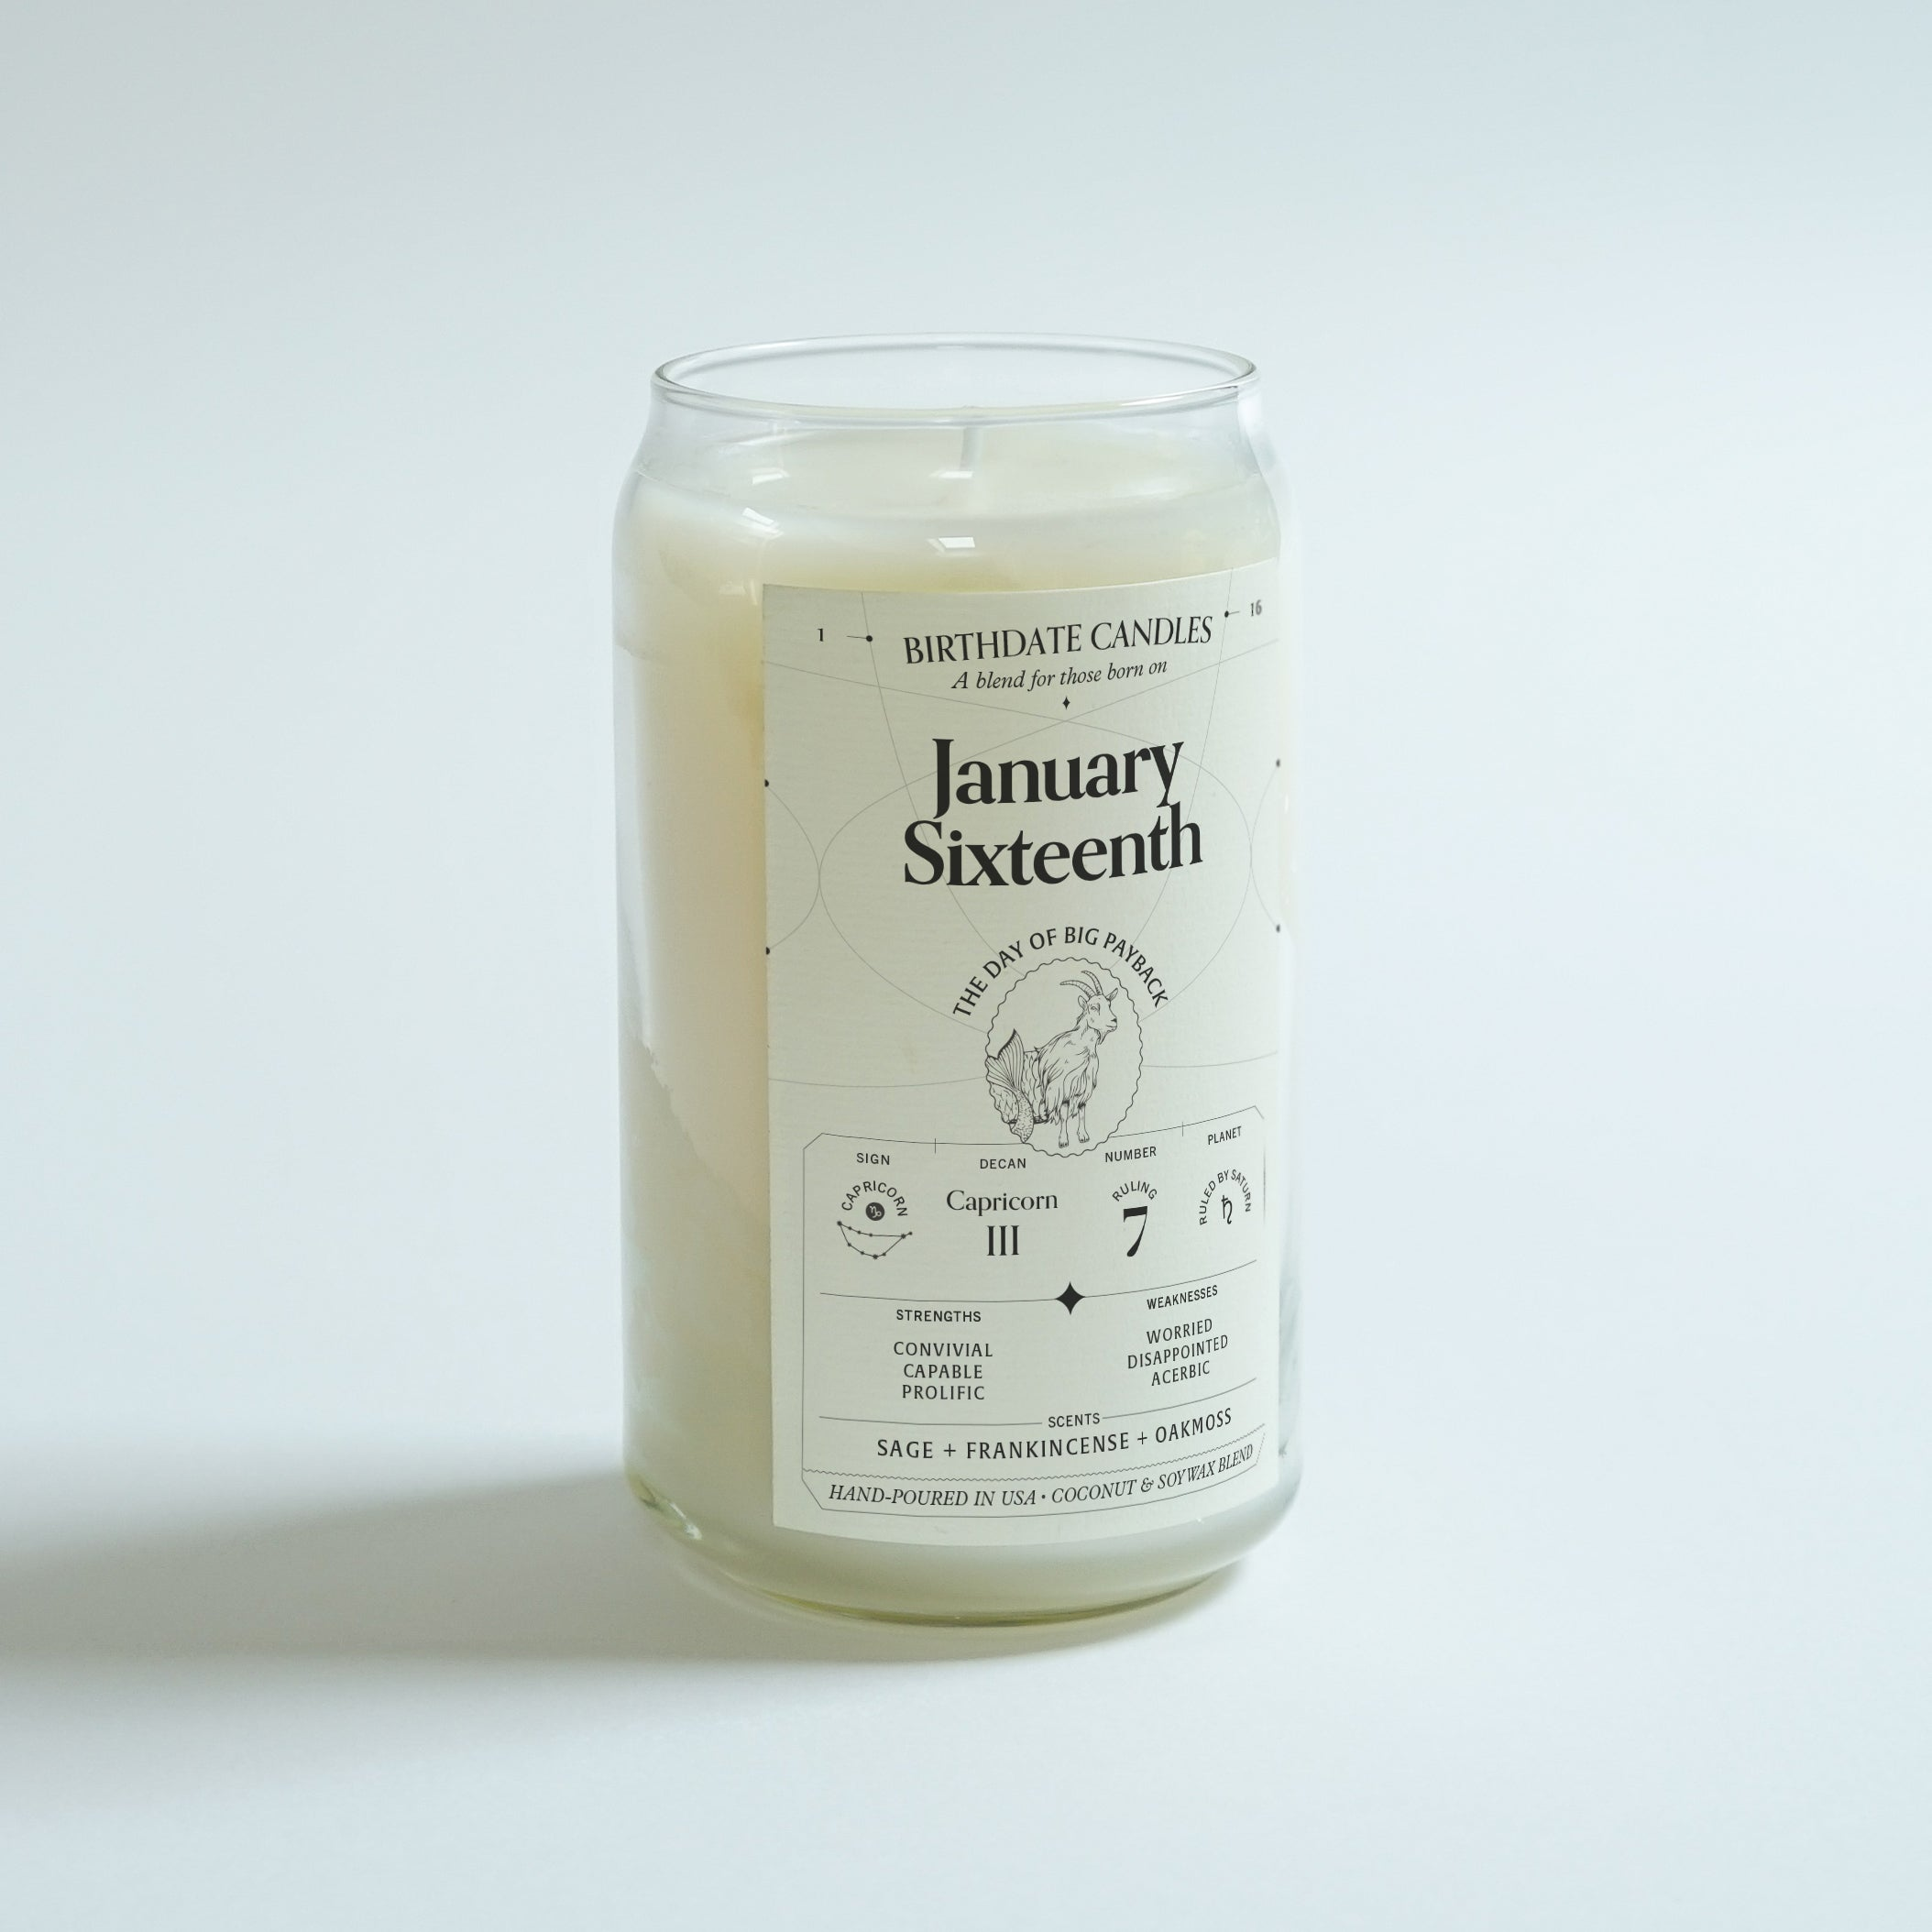 The January Sixteenth Candle